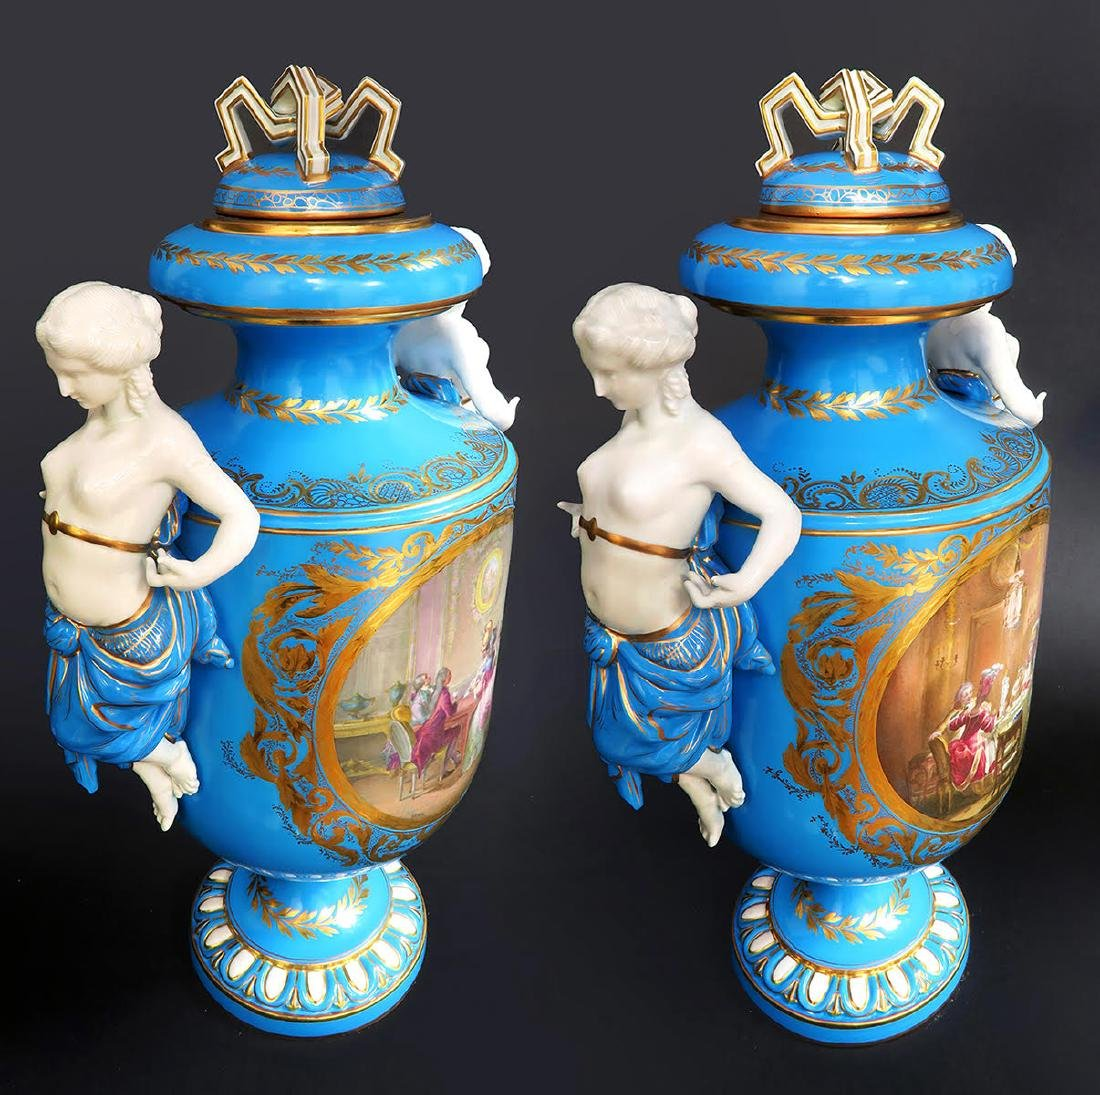 Pair of French Figural Sevres Porcelain Urns - 3